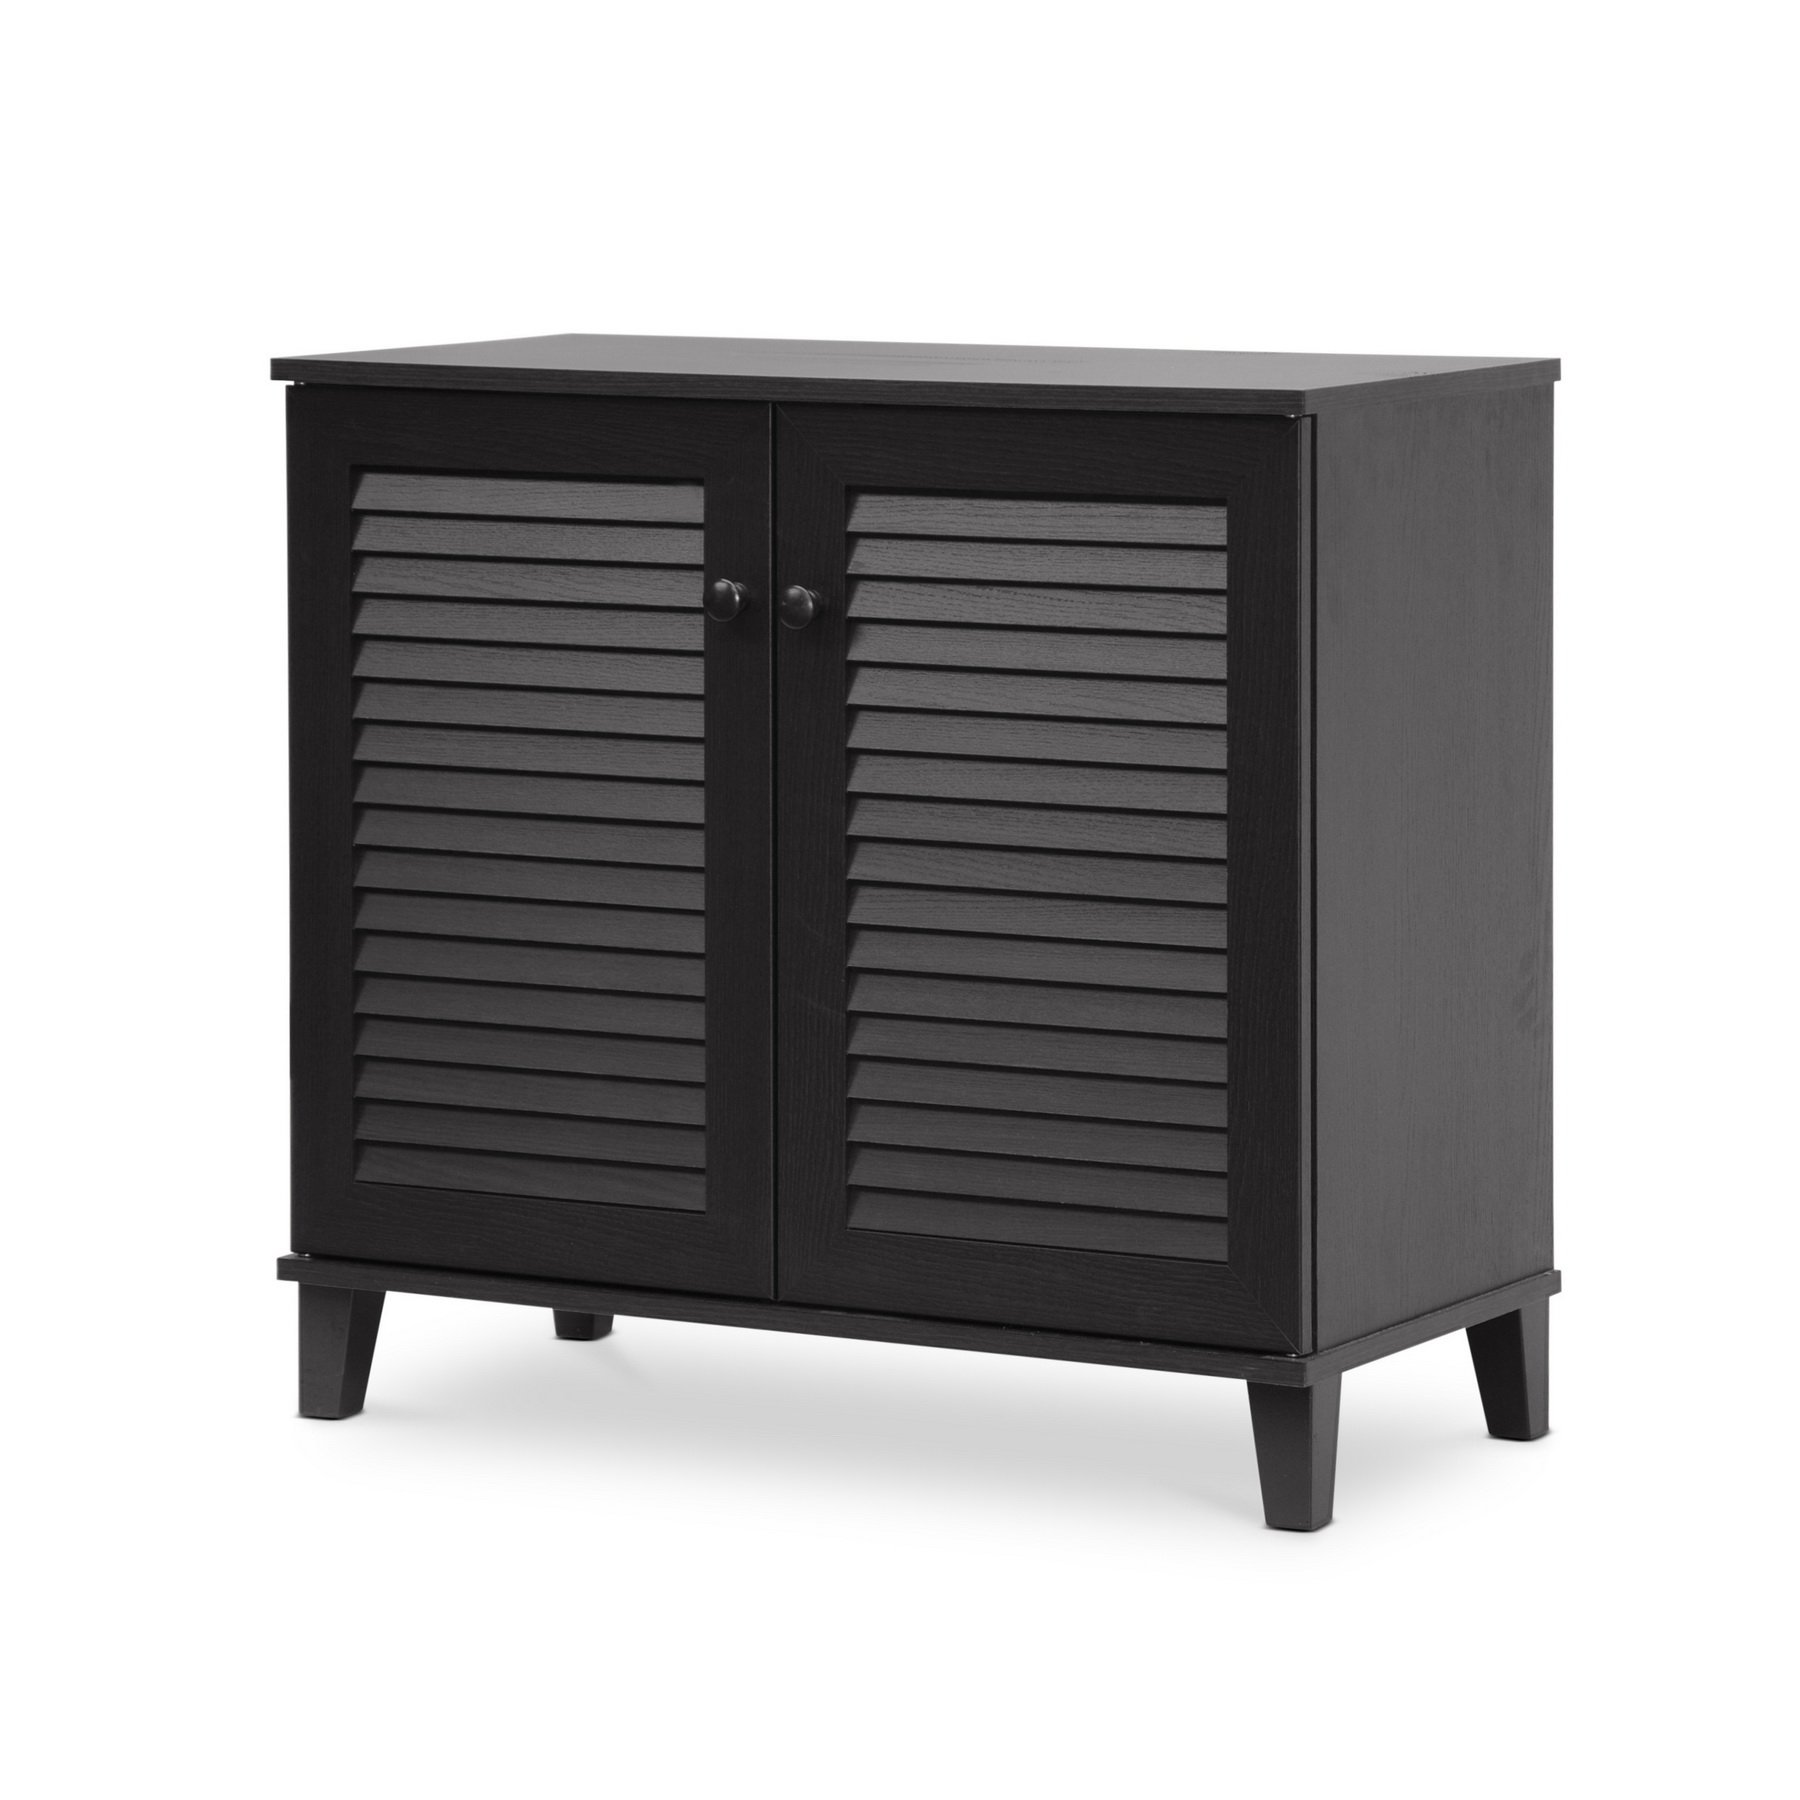 Baxton Studio Coolidge Shoe-Storage Cabinet, Espresso by Baxton Studio